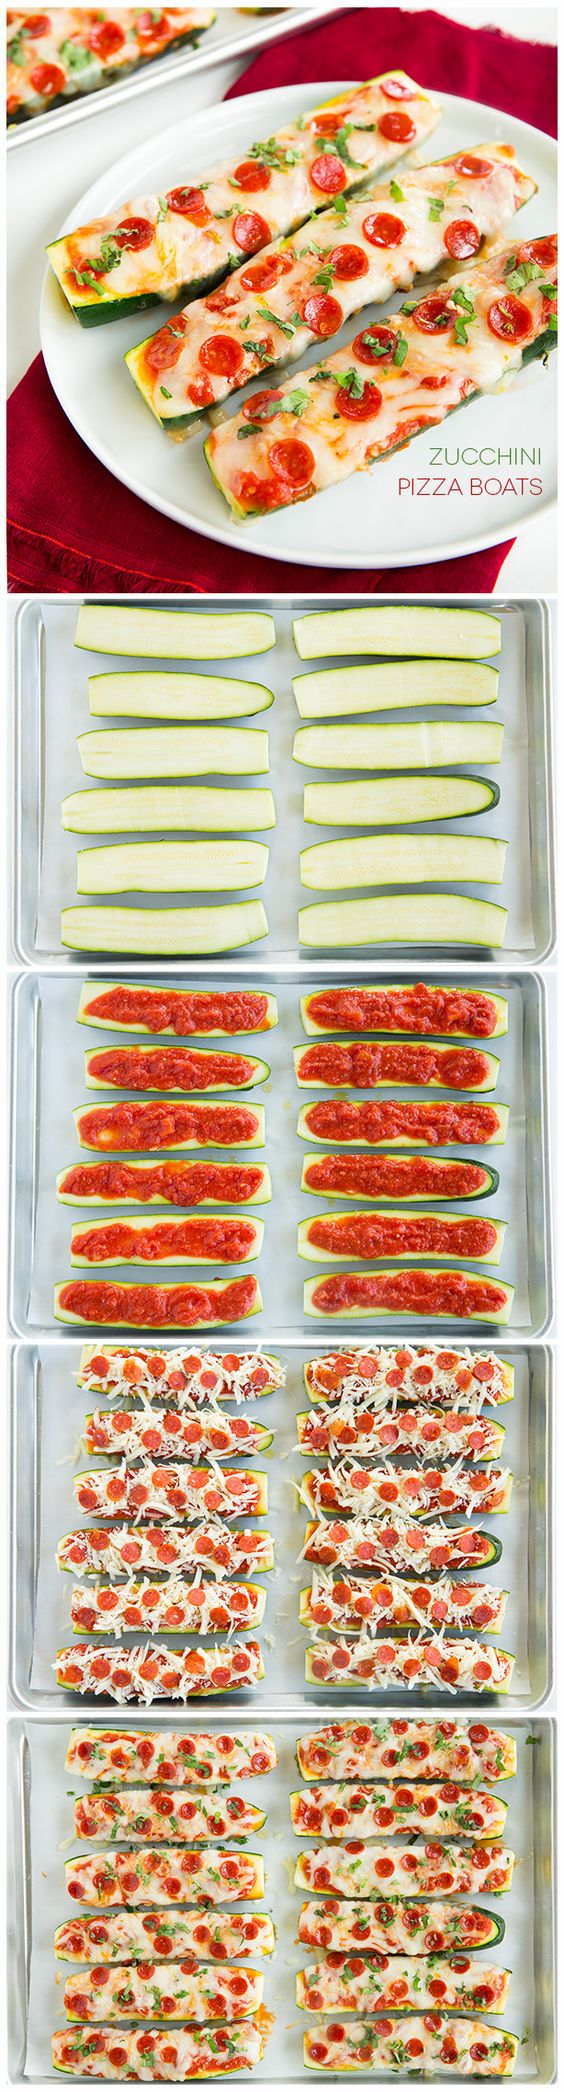 Zucchini Pizza Boats - they are INCREDIBLY good and only take about 10 minutes prep!! My whole family loved them (picky eaters included).: Zuchinni Side Dish, Eaters Included, Zucchini Pizza Boats, 10 Minutes, Zuchini Side, Healthy Pizza, Pepperoni Pizza Recipe, Picky Eaters